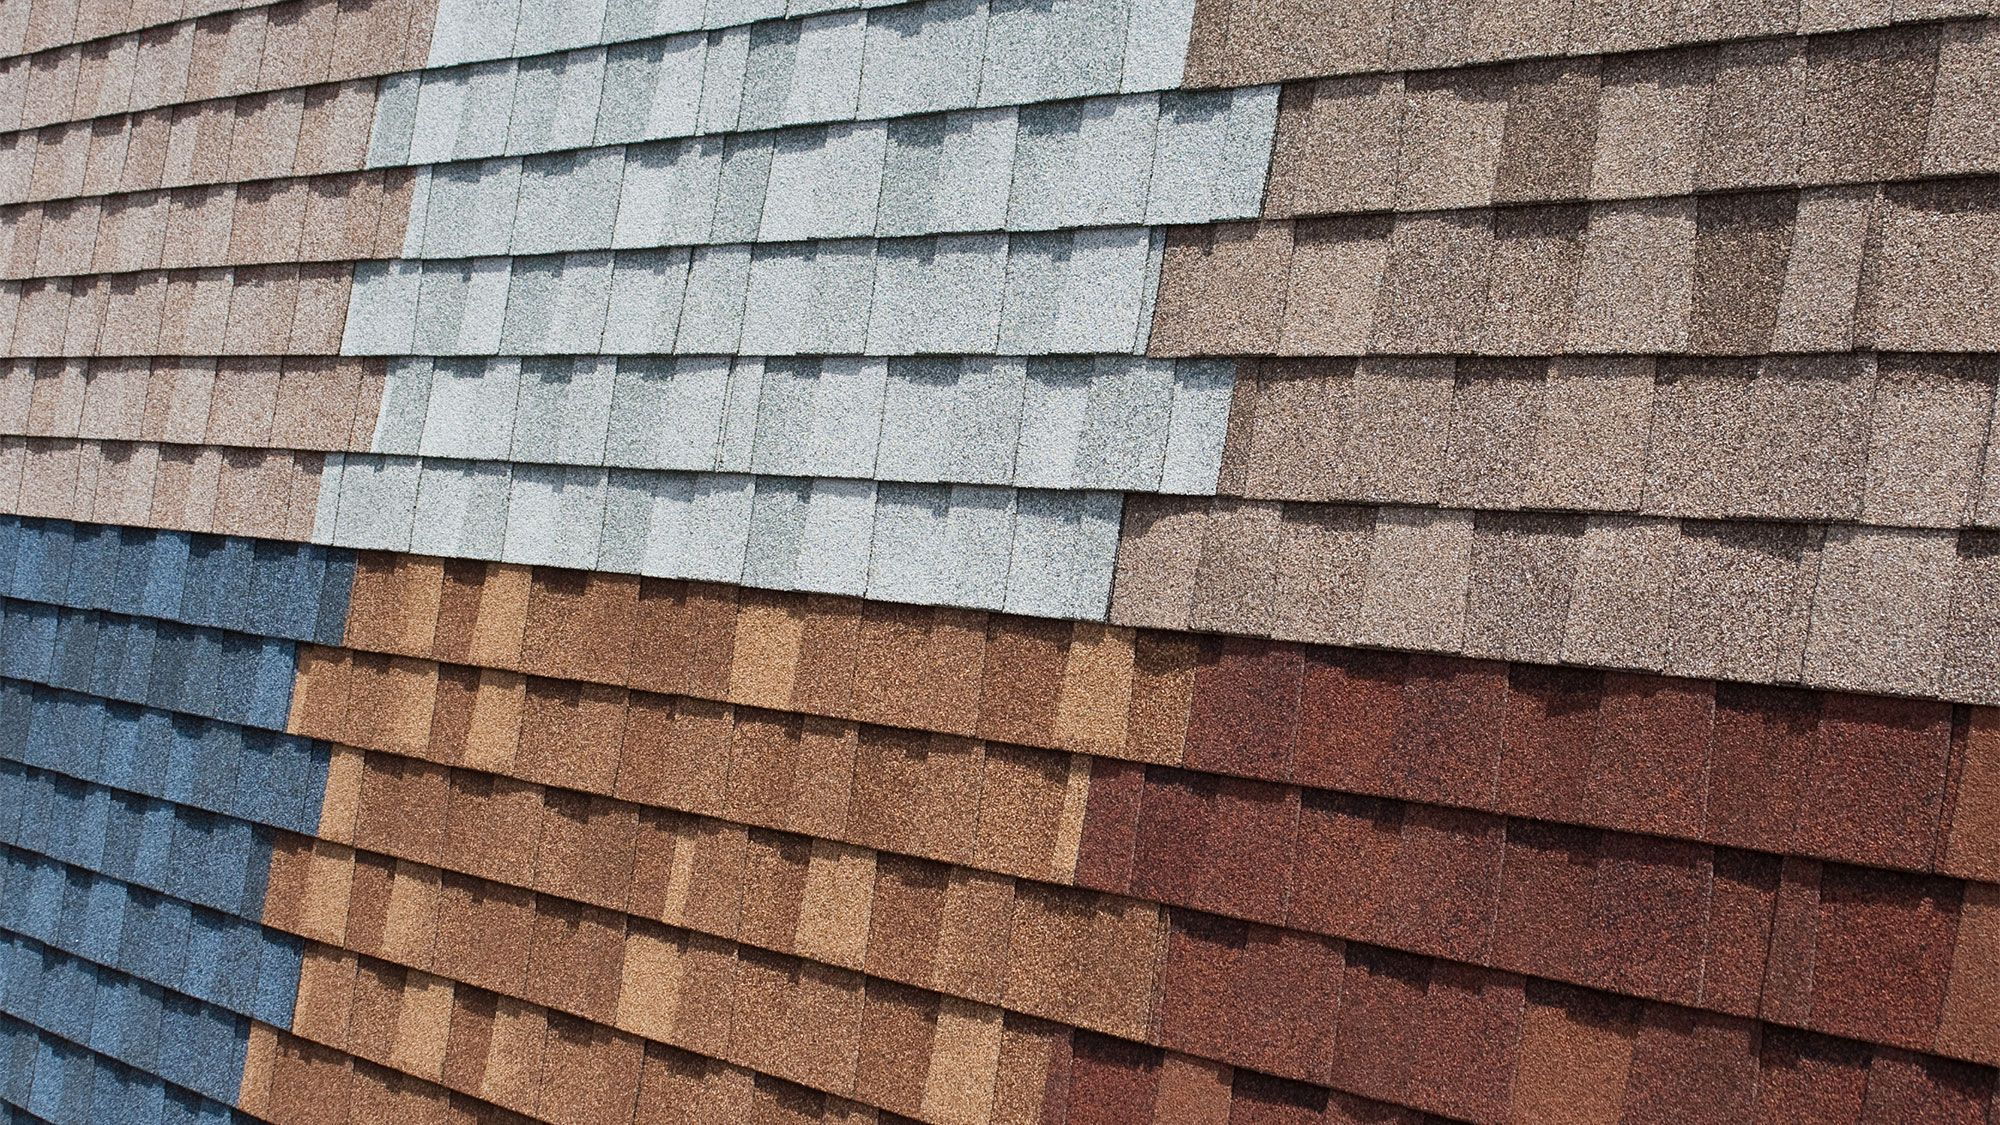 Types of Roofing: Do You Have the Right One? | Real Estate